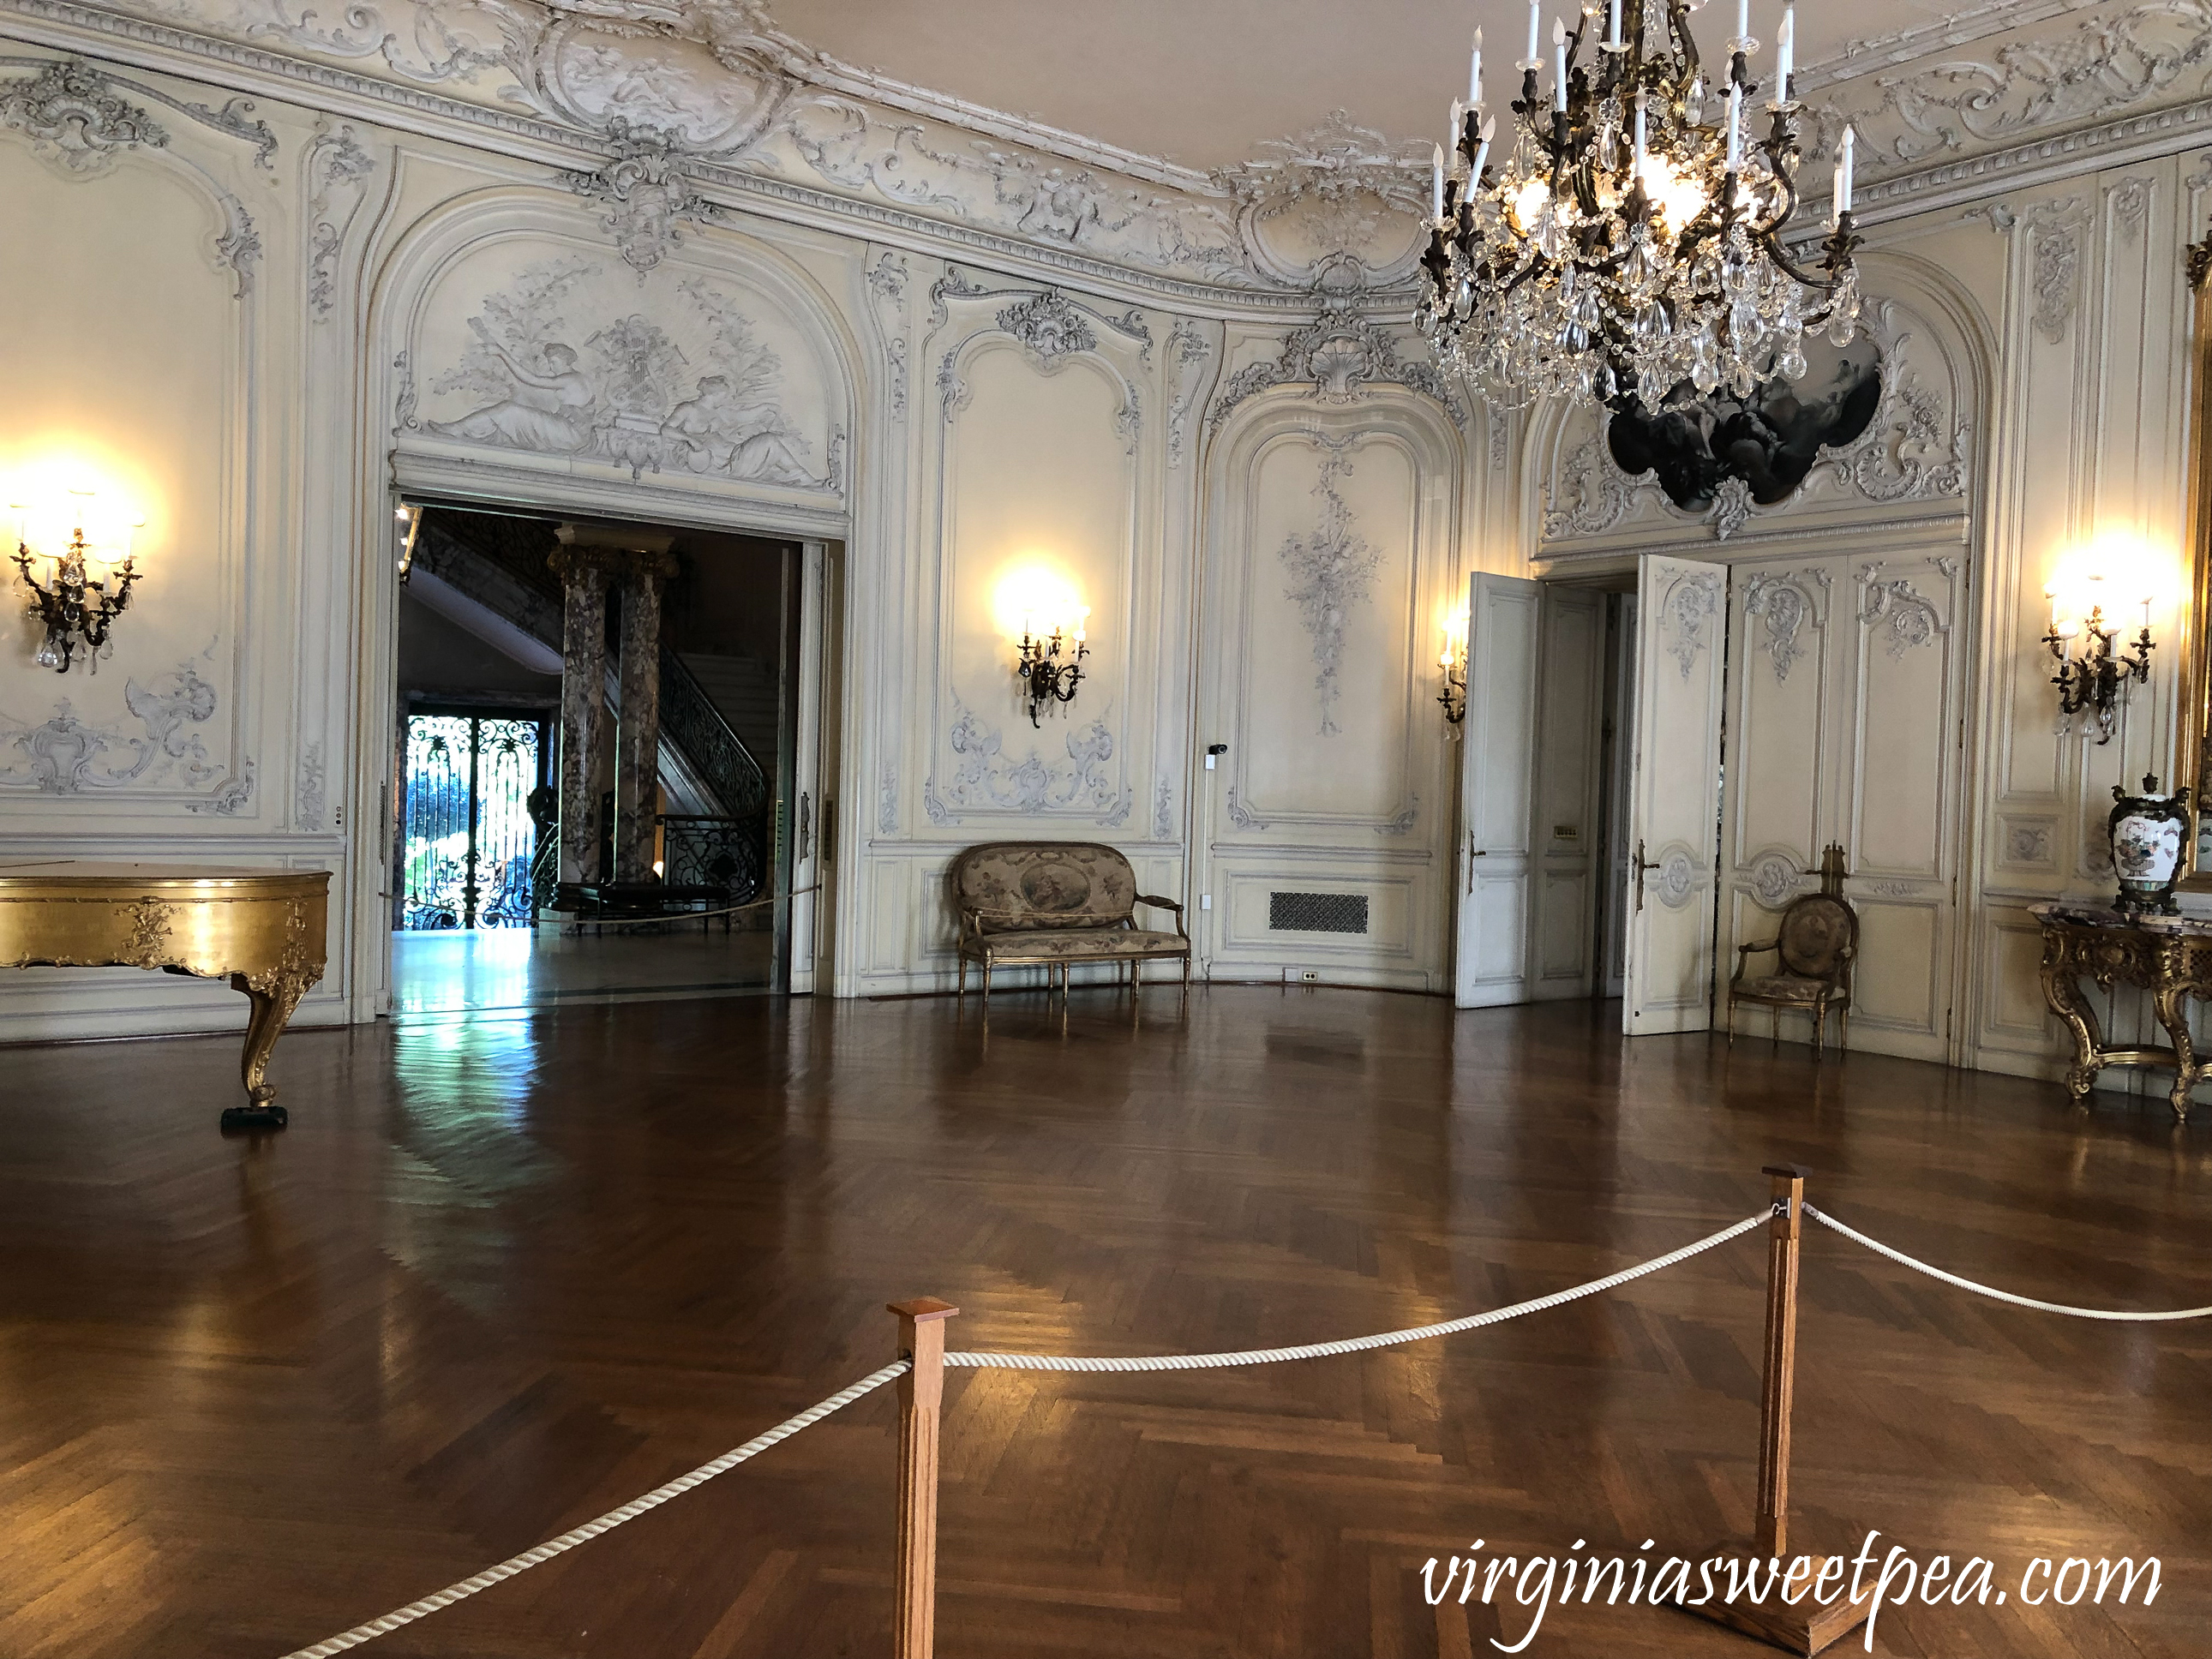 The ballroom in The Elms in Newport, RI